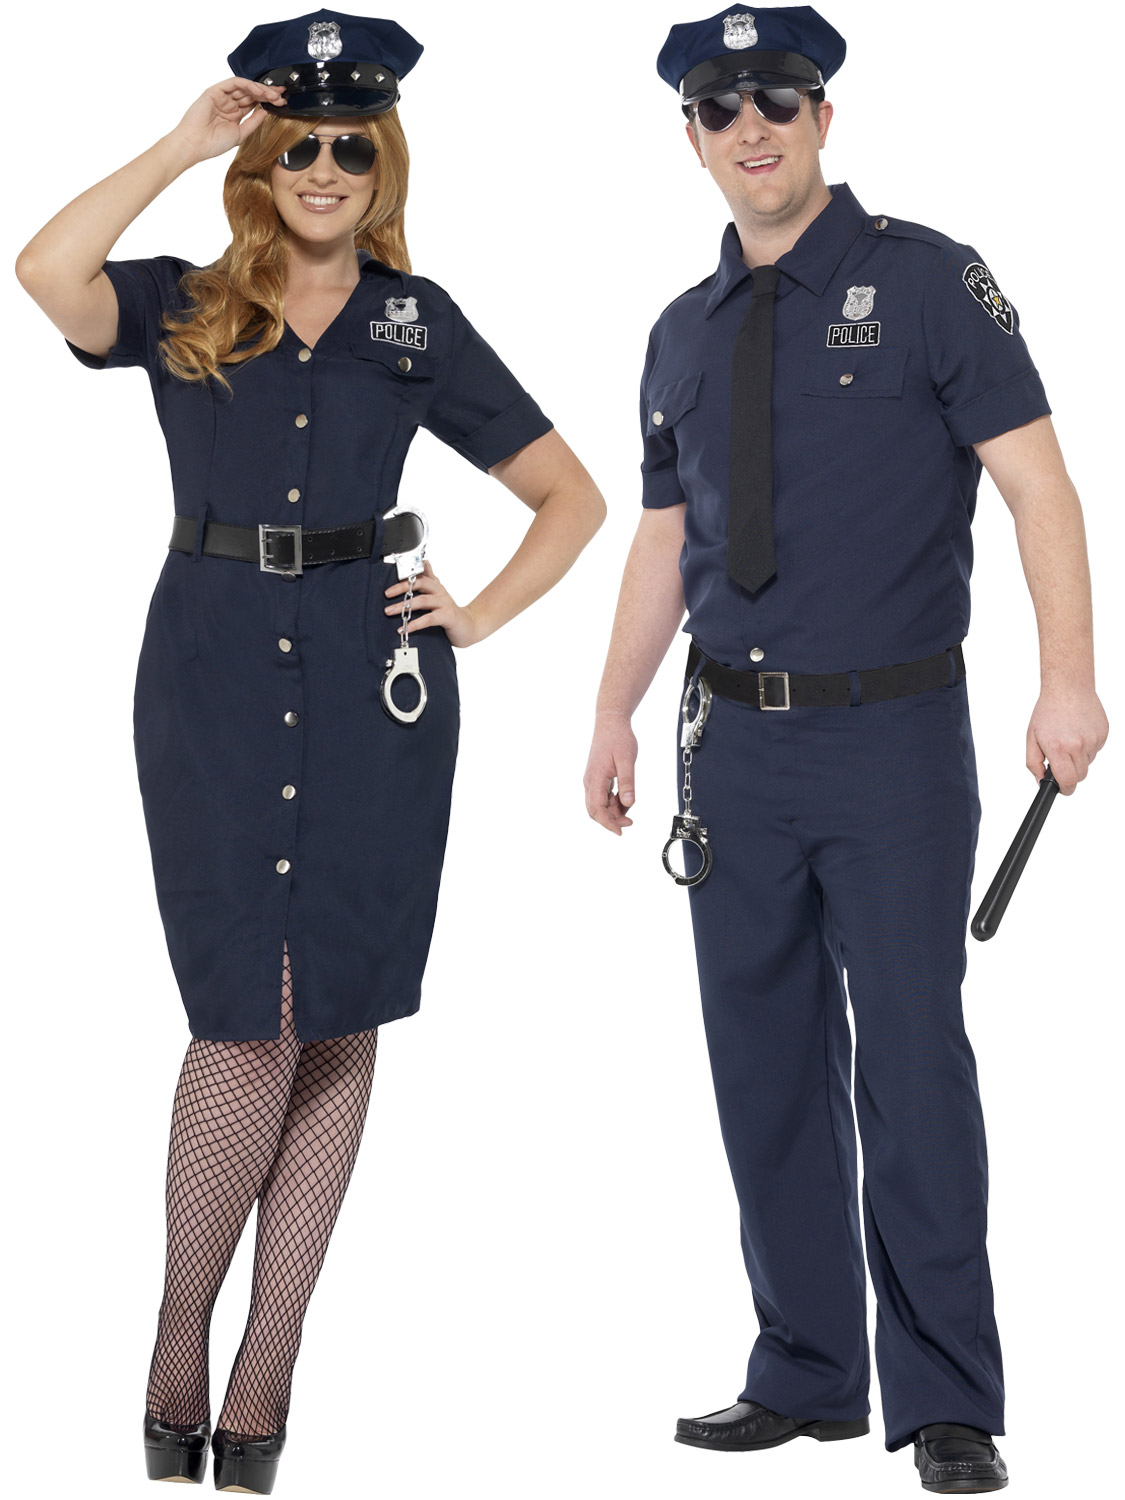 Mens ladies police cop costume plus size policewoman policeman fancy transform yourself into the nypc with these adults nyc mens or ladies cop costumes ideal if you are dressing up for a stag or hen party or even a cops and solutioingenieria Image collections